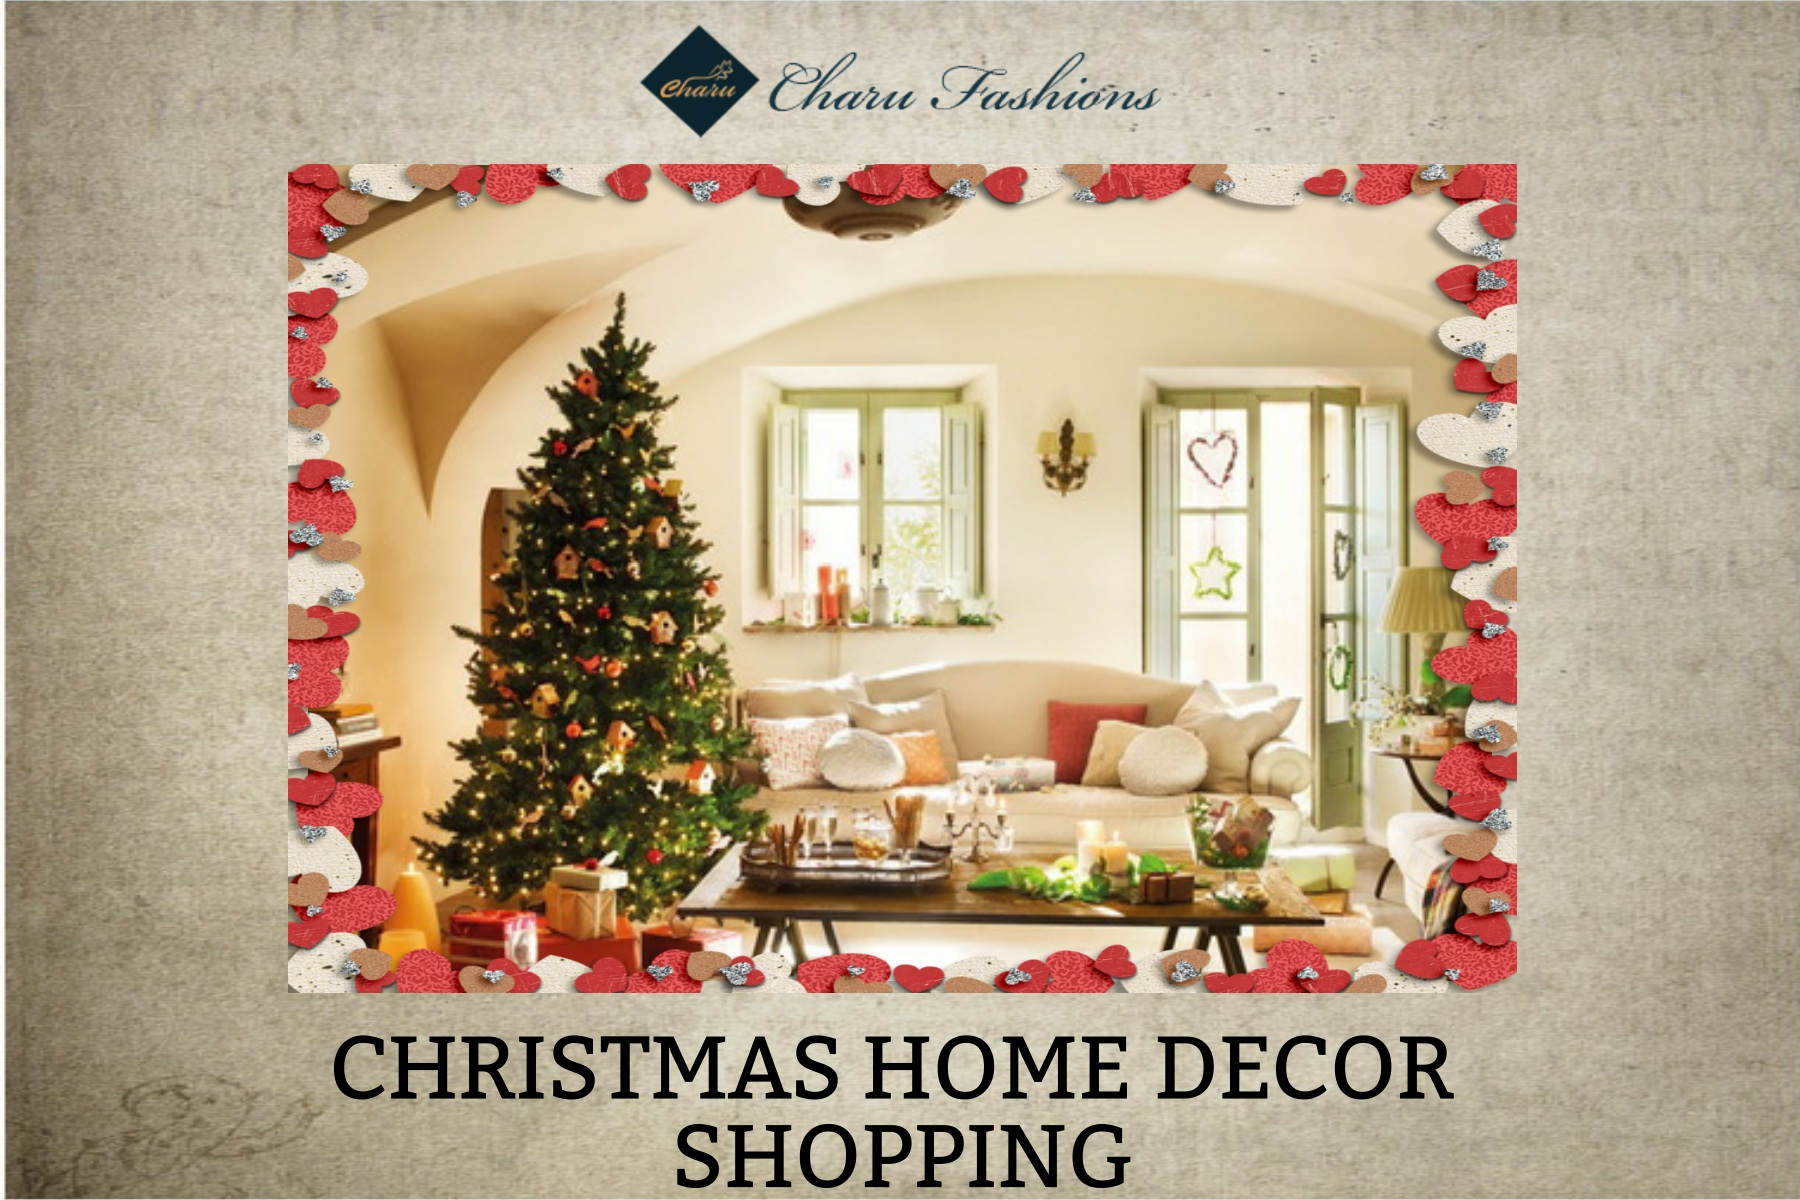 Christmas 2015 Wholesale Home Decor Items Charu Fashions